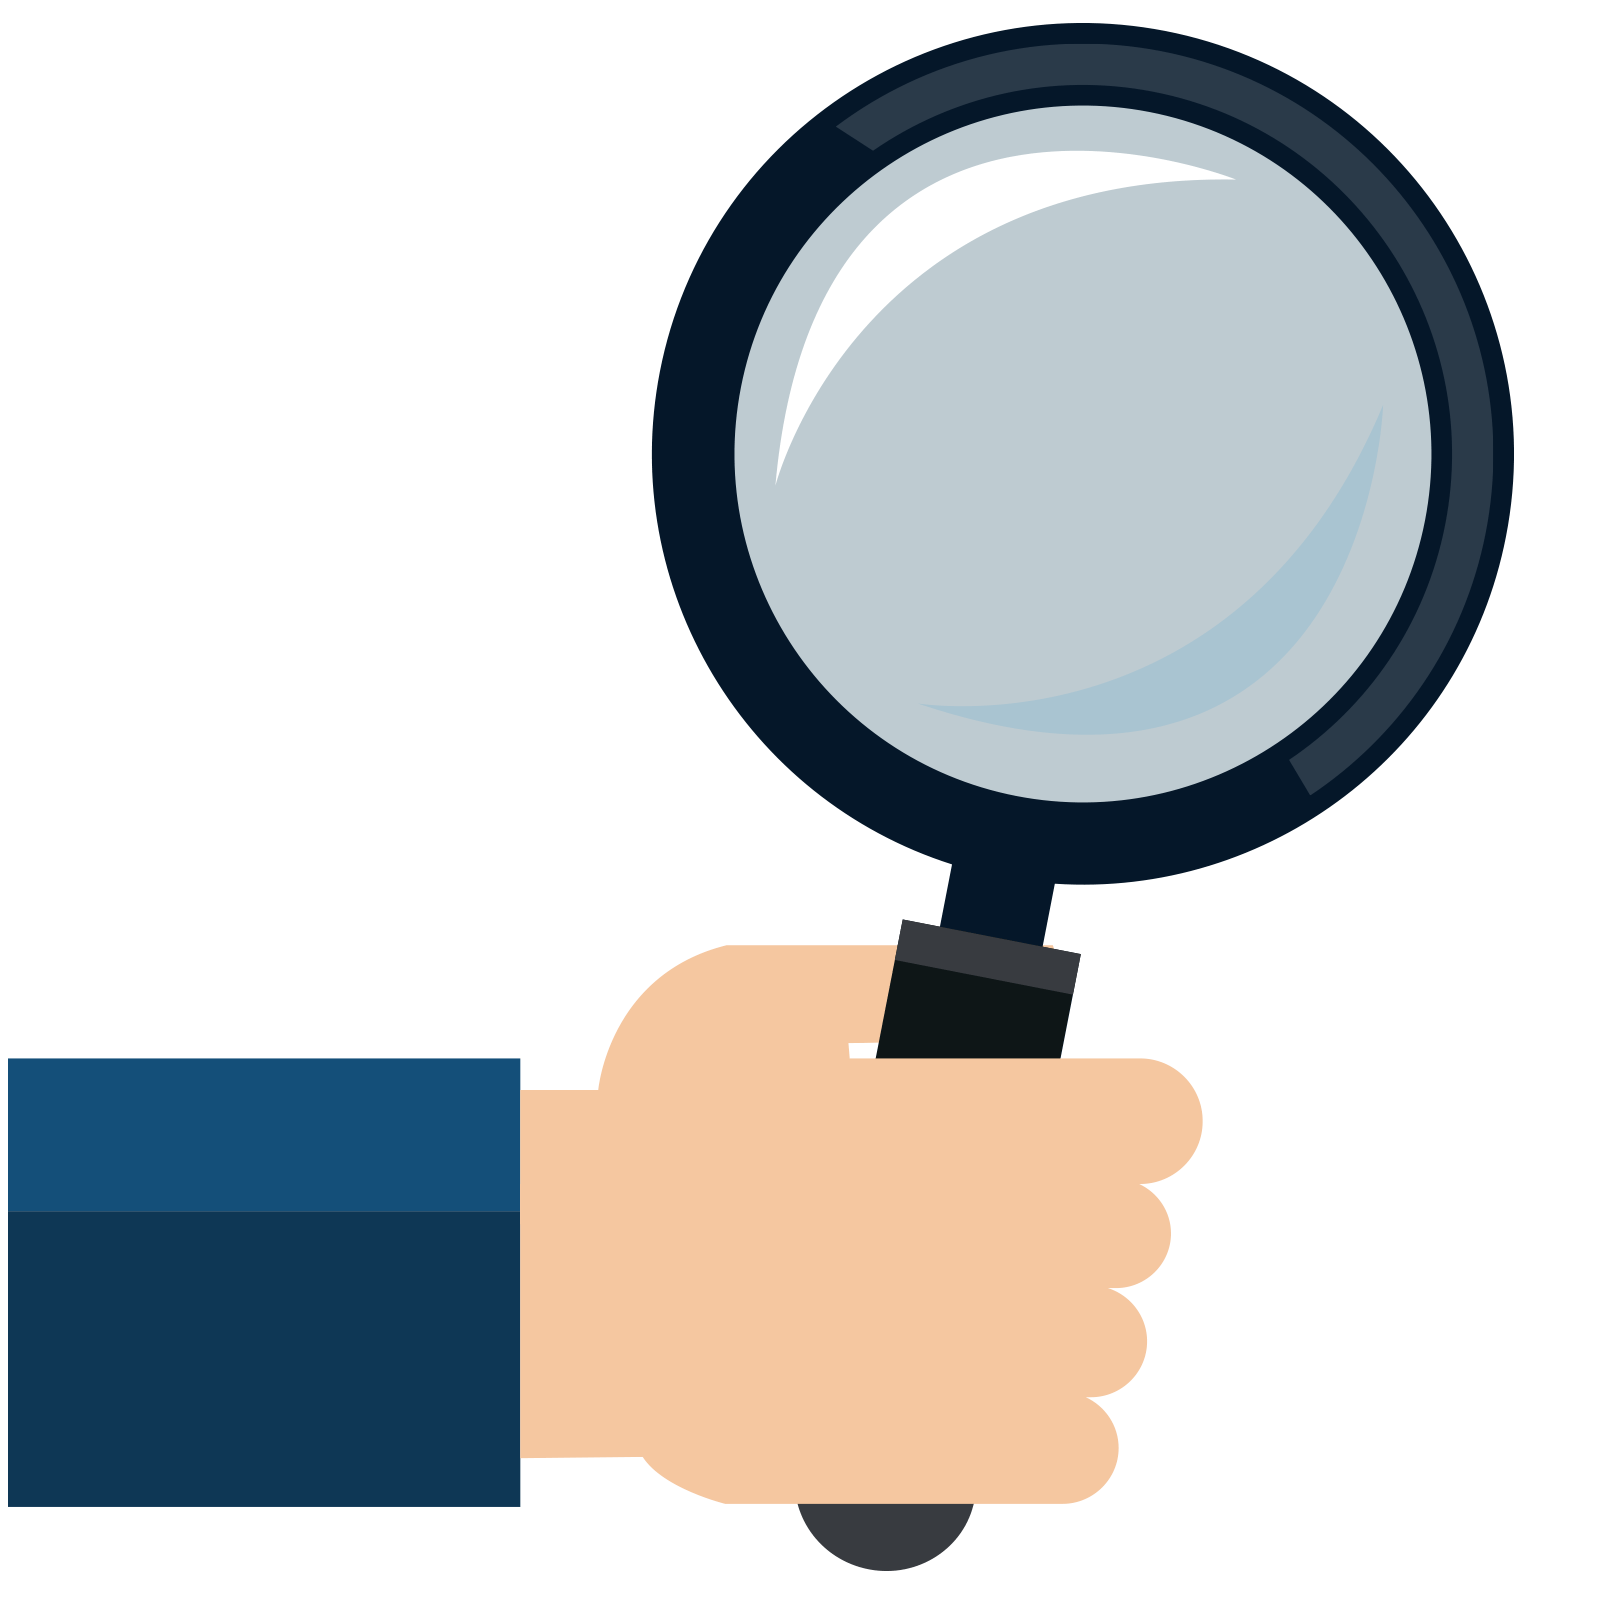 Computer Clipart Magnifying Glass Computer Magnifying